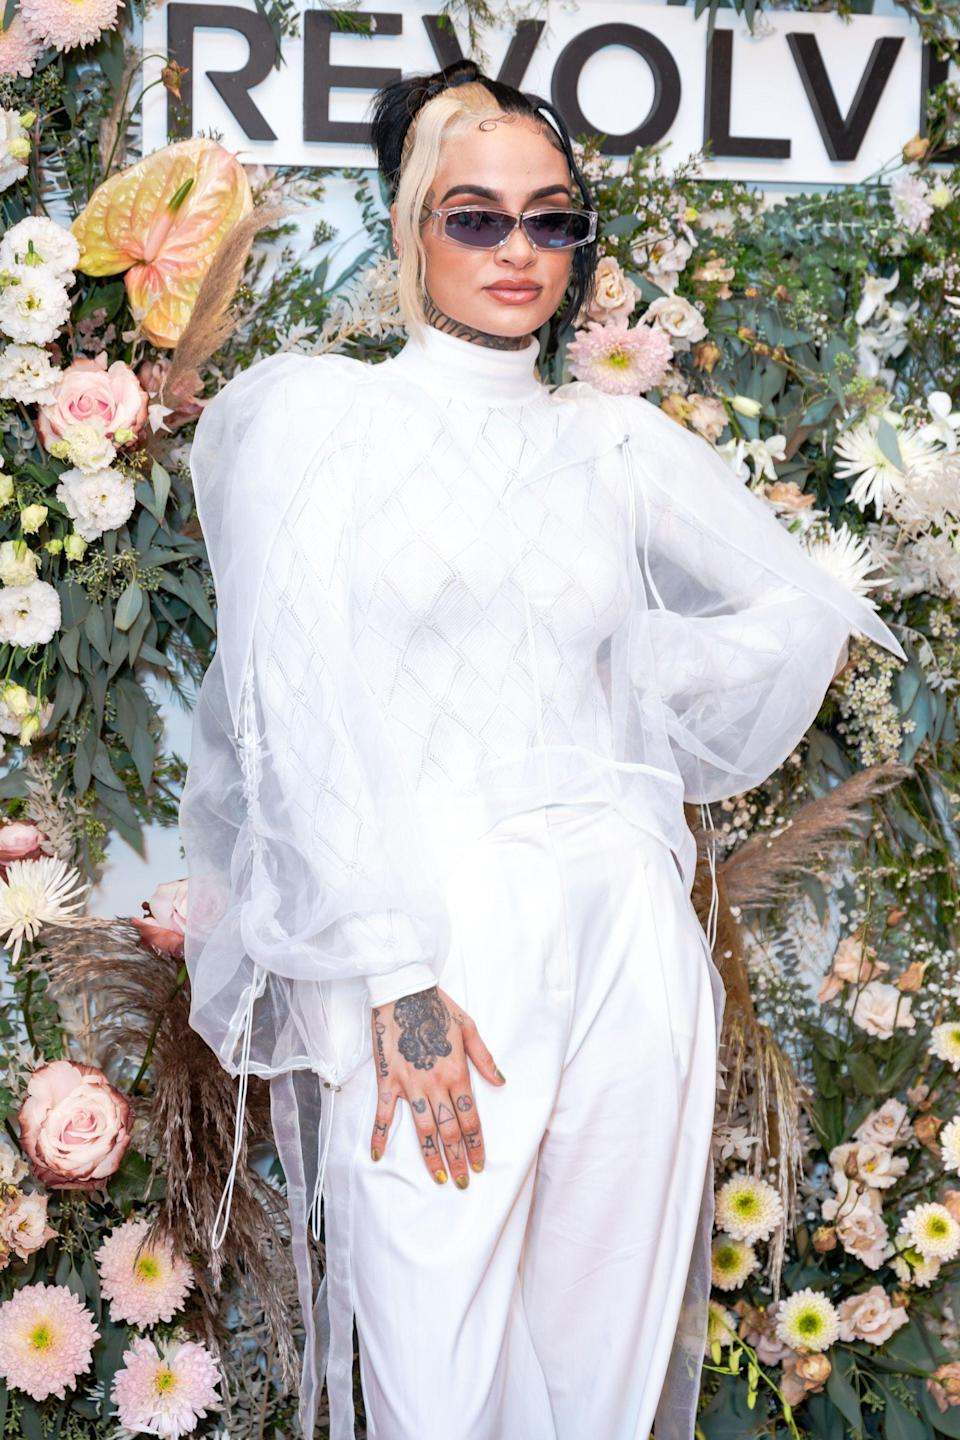 Kehlani Wows Everyone at New York Fashion Week - of Course She Does!